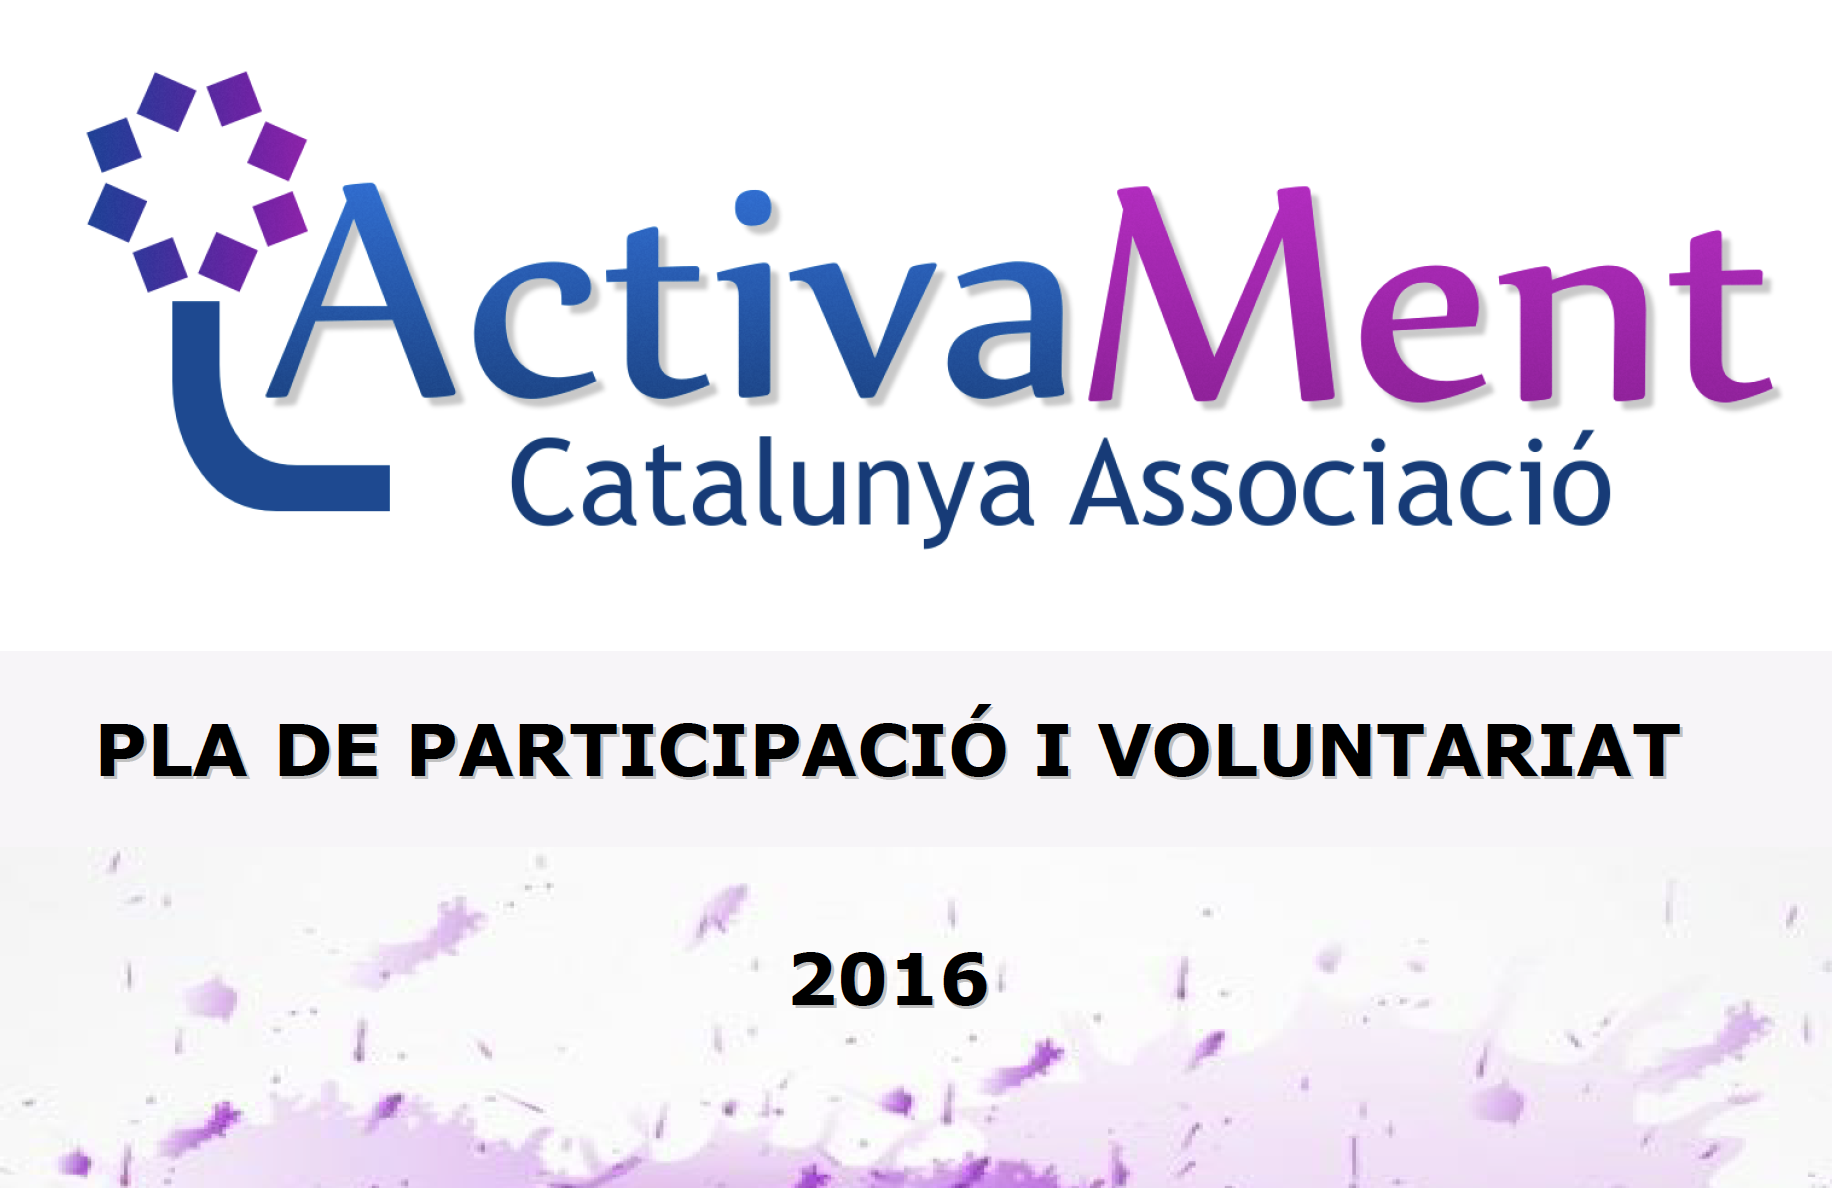 Plan de Participación y Voluntariado 2016